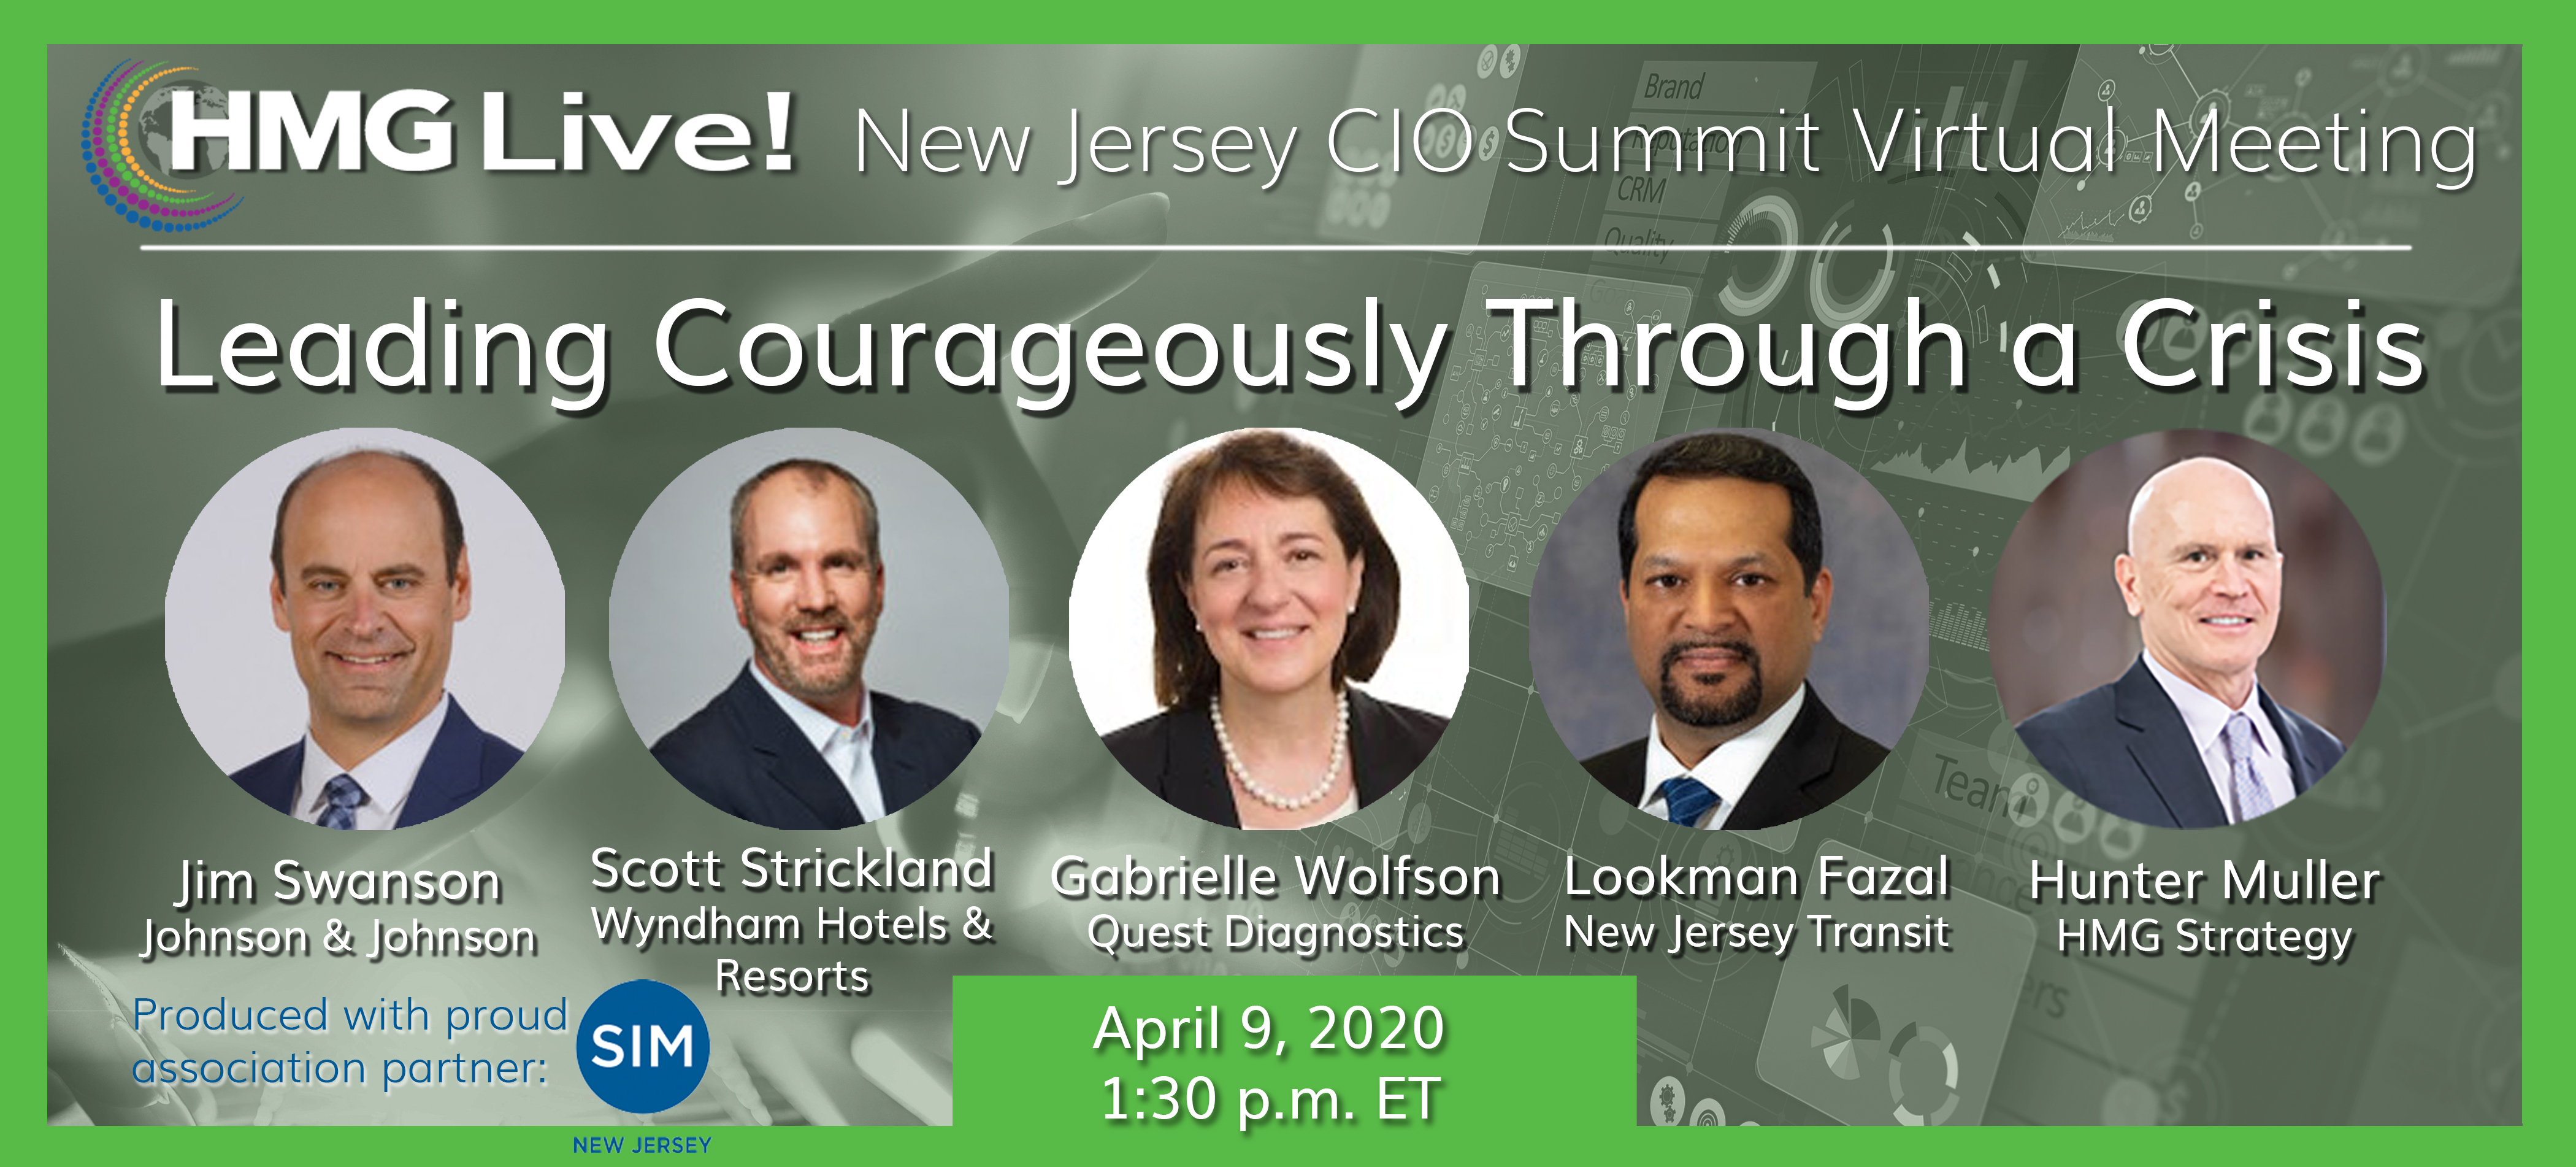 New Jersey Virtual Meeting Graphic